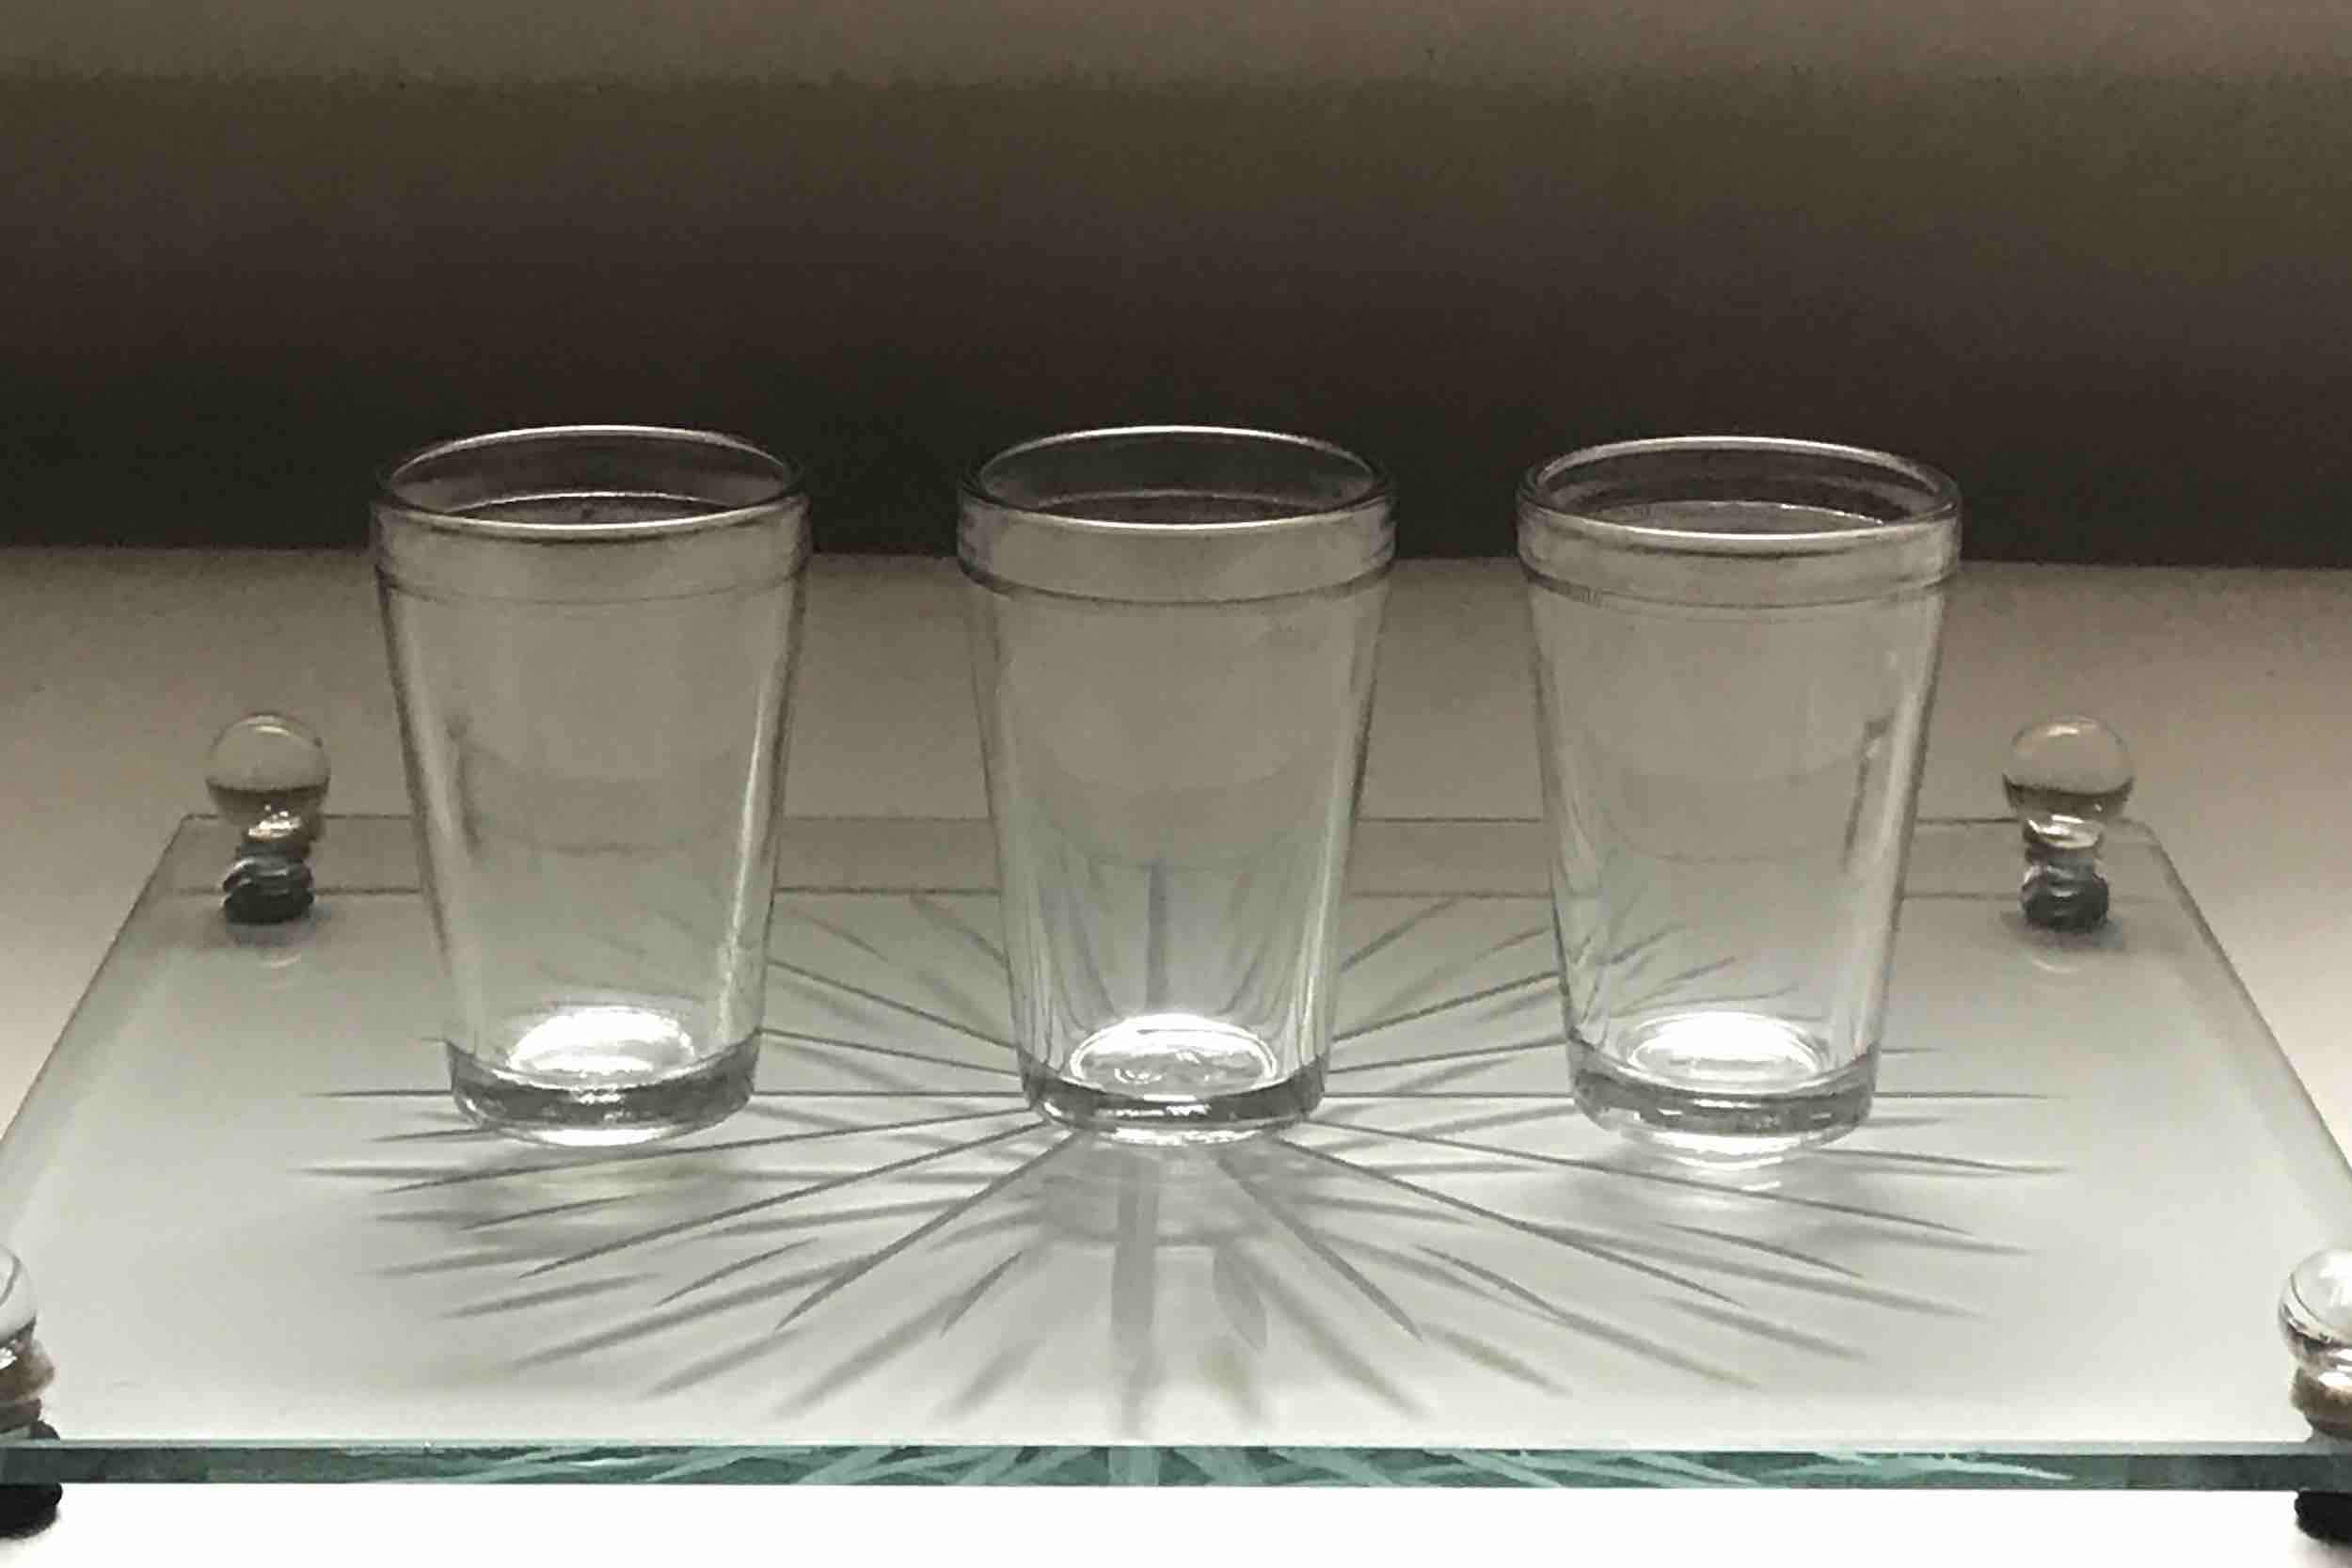 "#26: Three juice glasses on platform etched with sunburst pattern. 3"" x 10""x 8"""